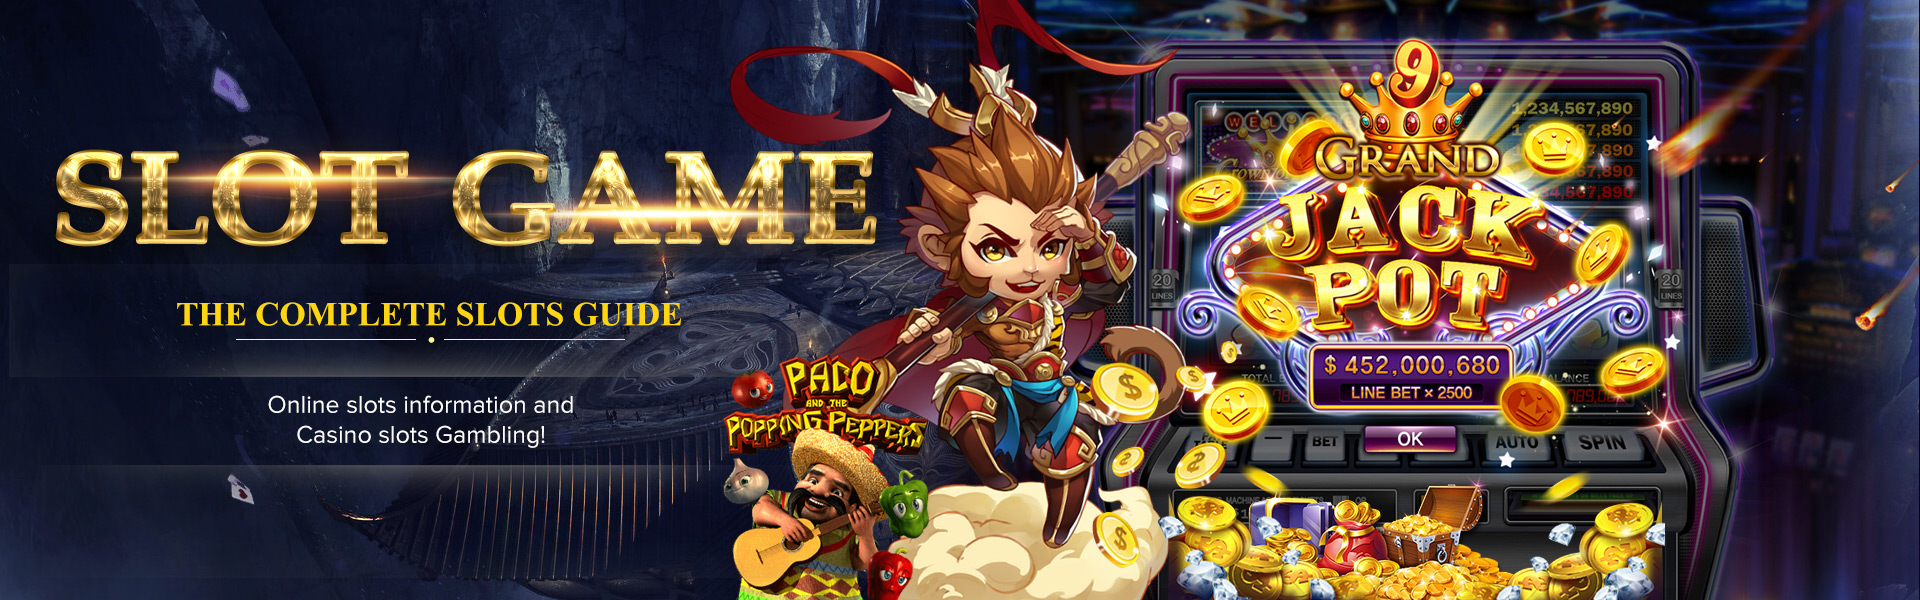 GET THE BEST DEAL ON ONLINE SLOT GAMES MALAYSIA - Uw88e